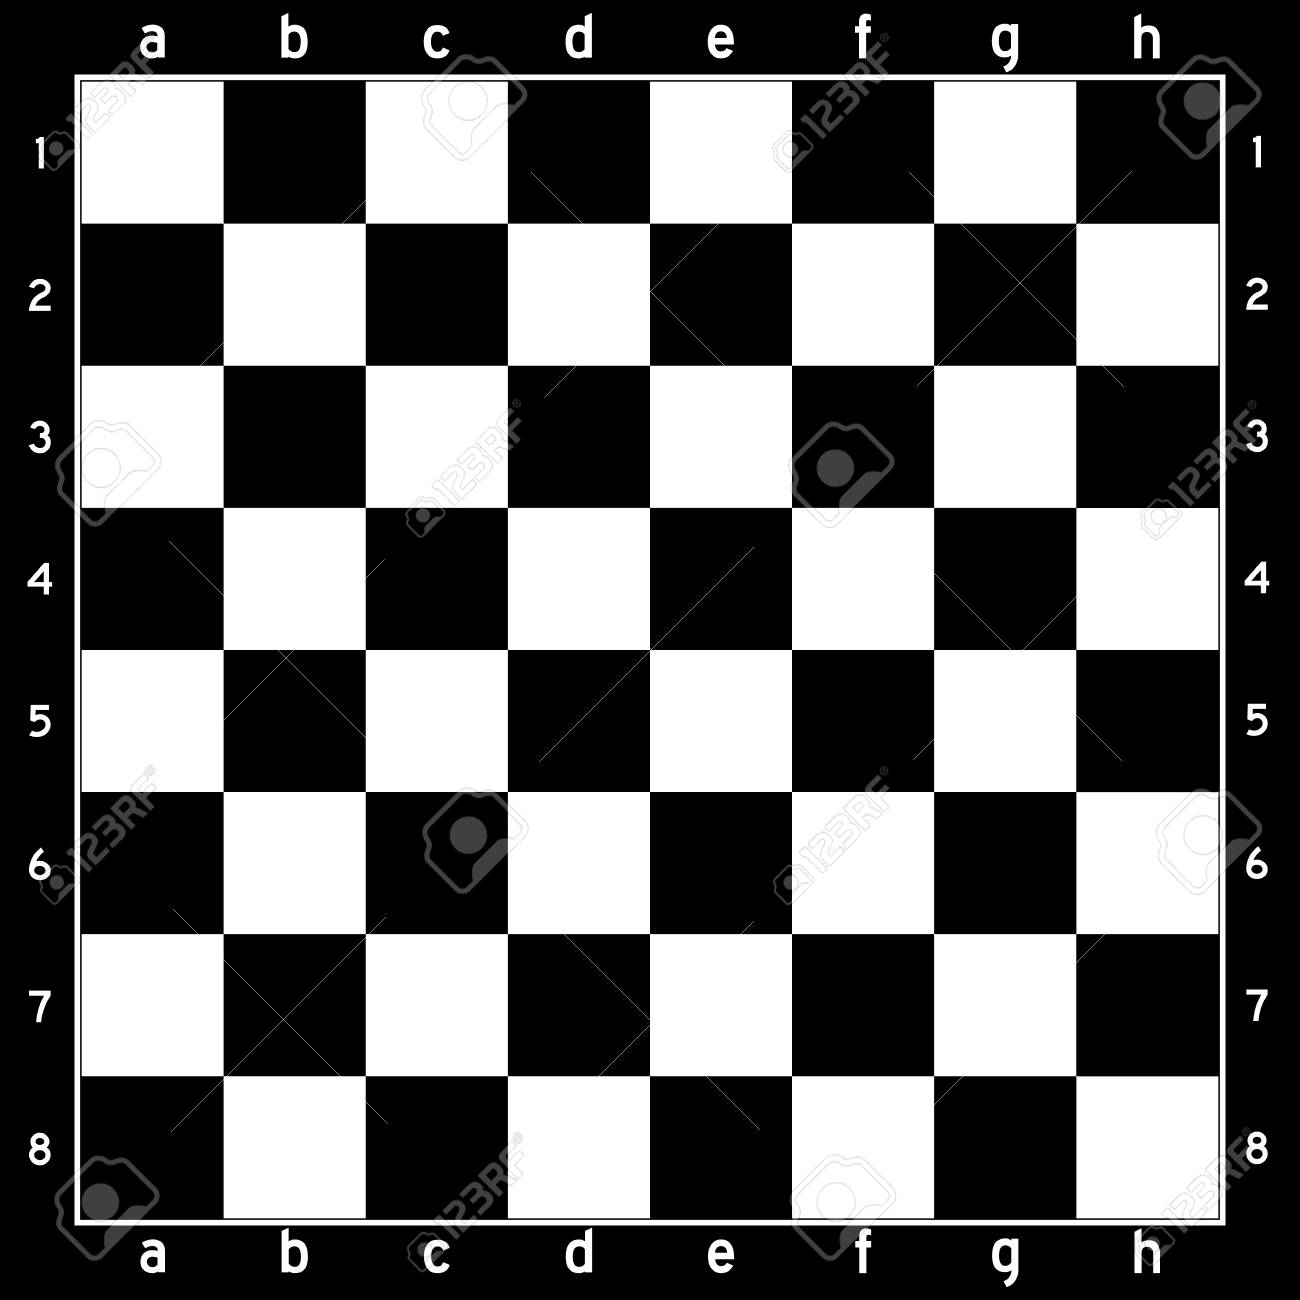 Black and white color chess board game background.